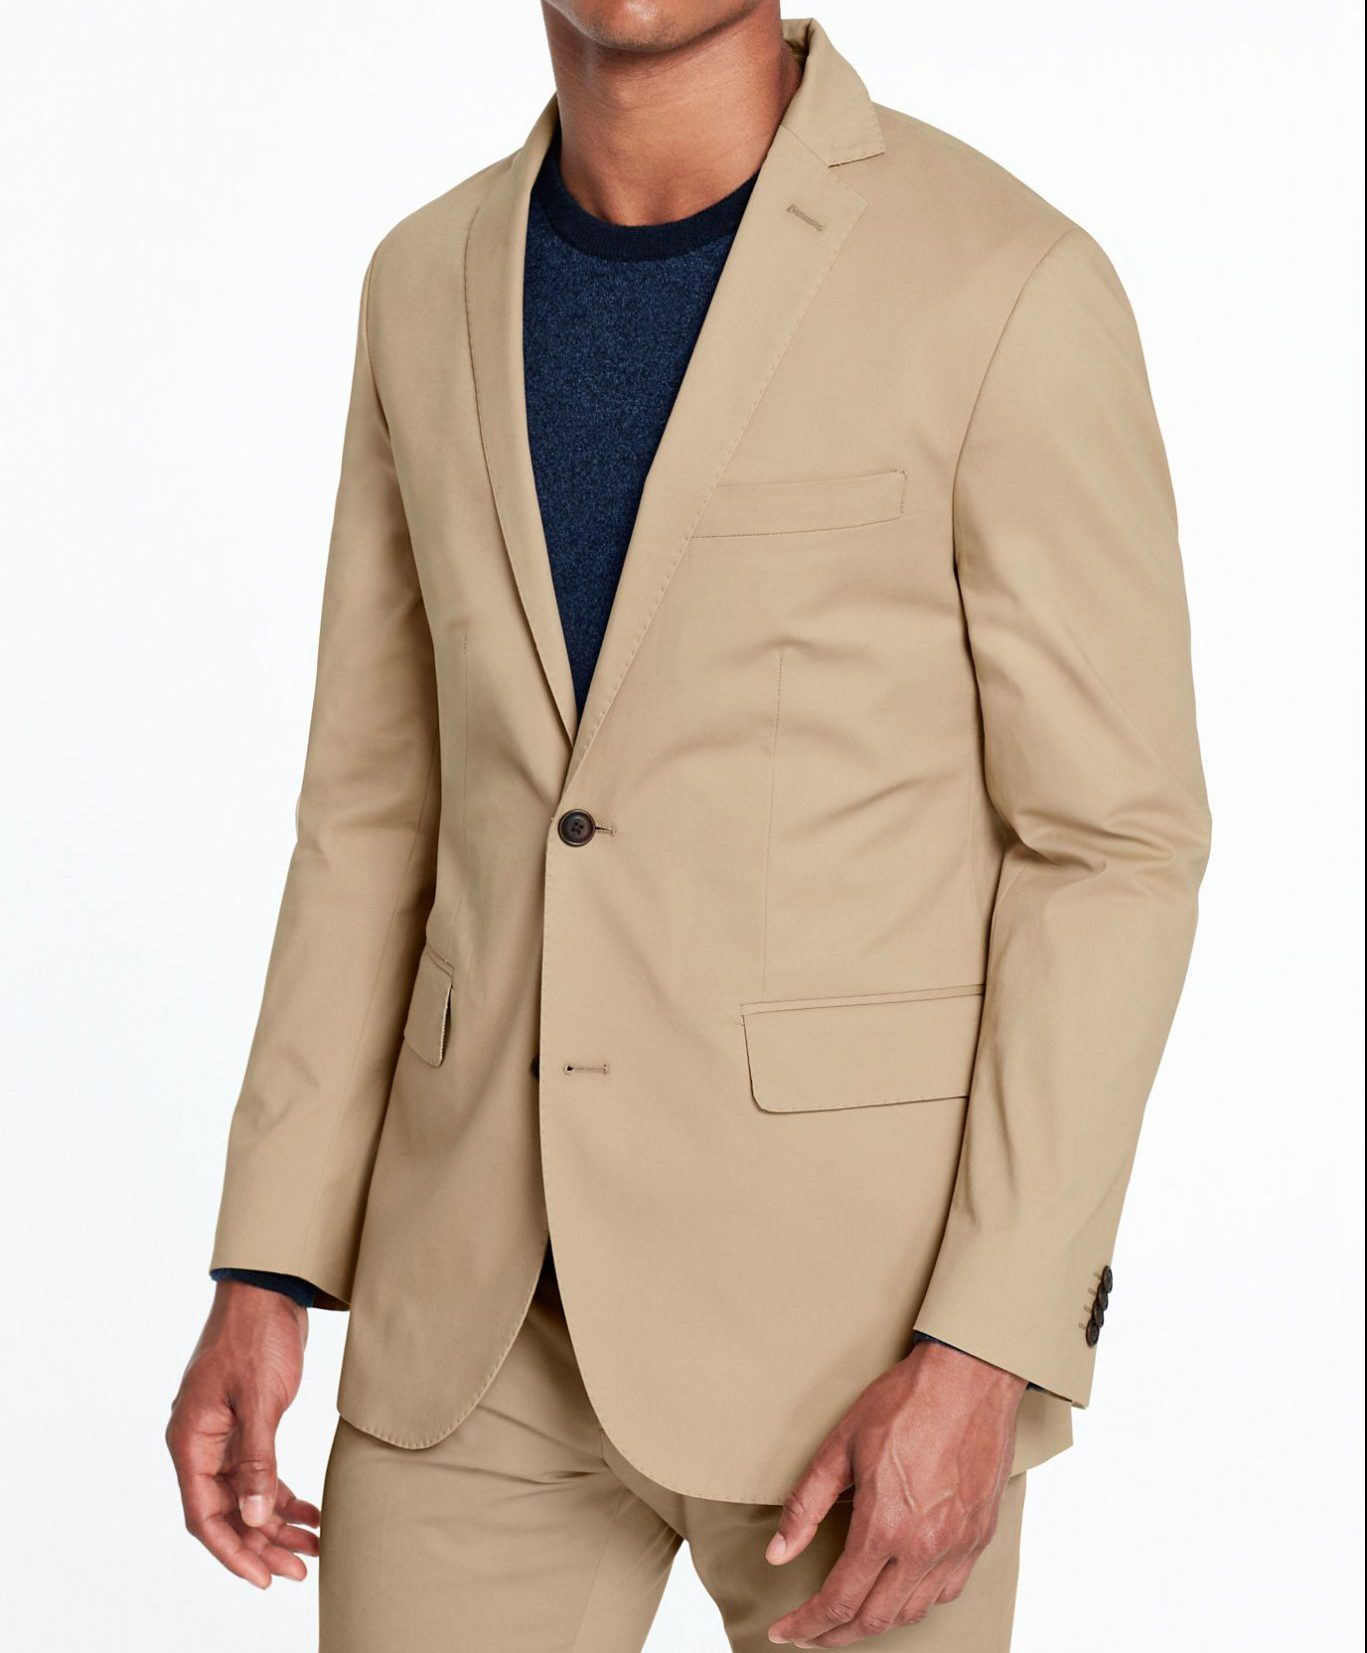 dapper-advisor-affordable-spring-summer-blazers-2